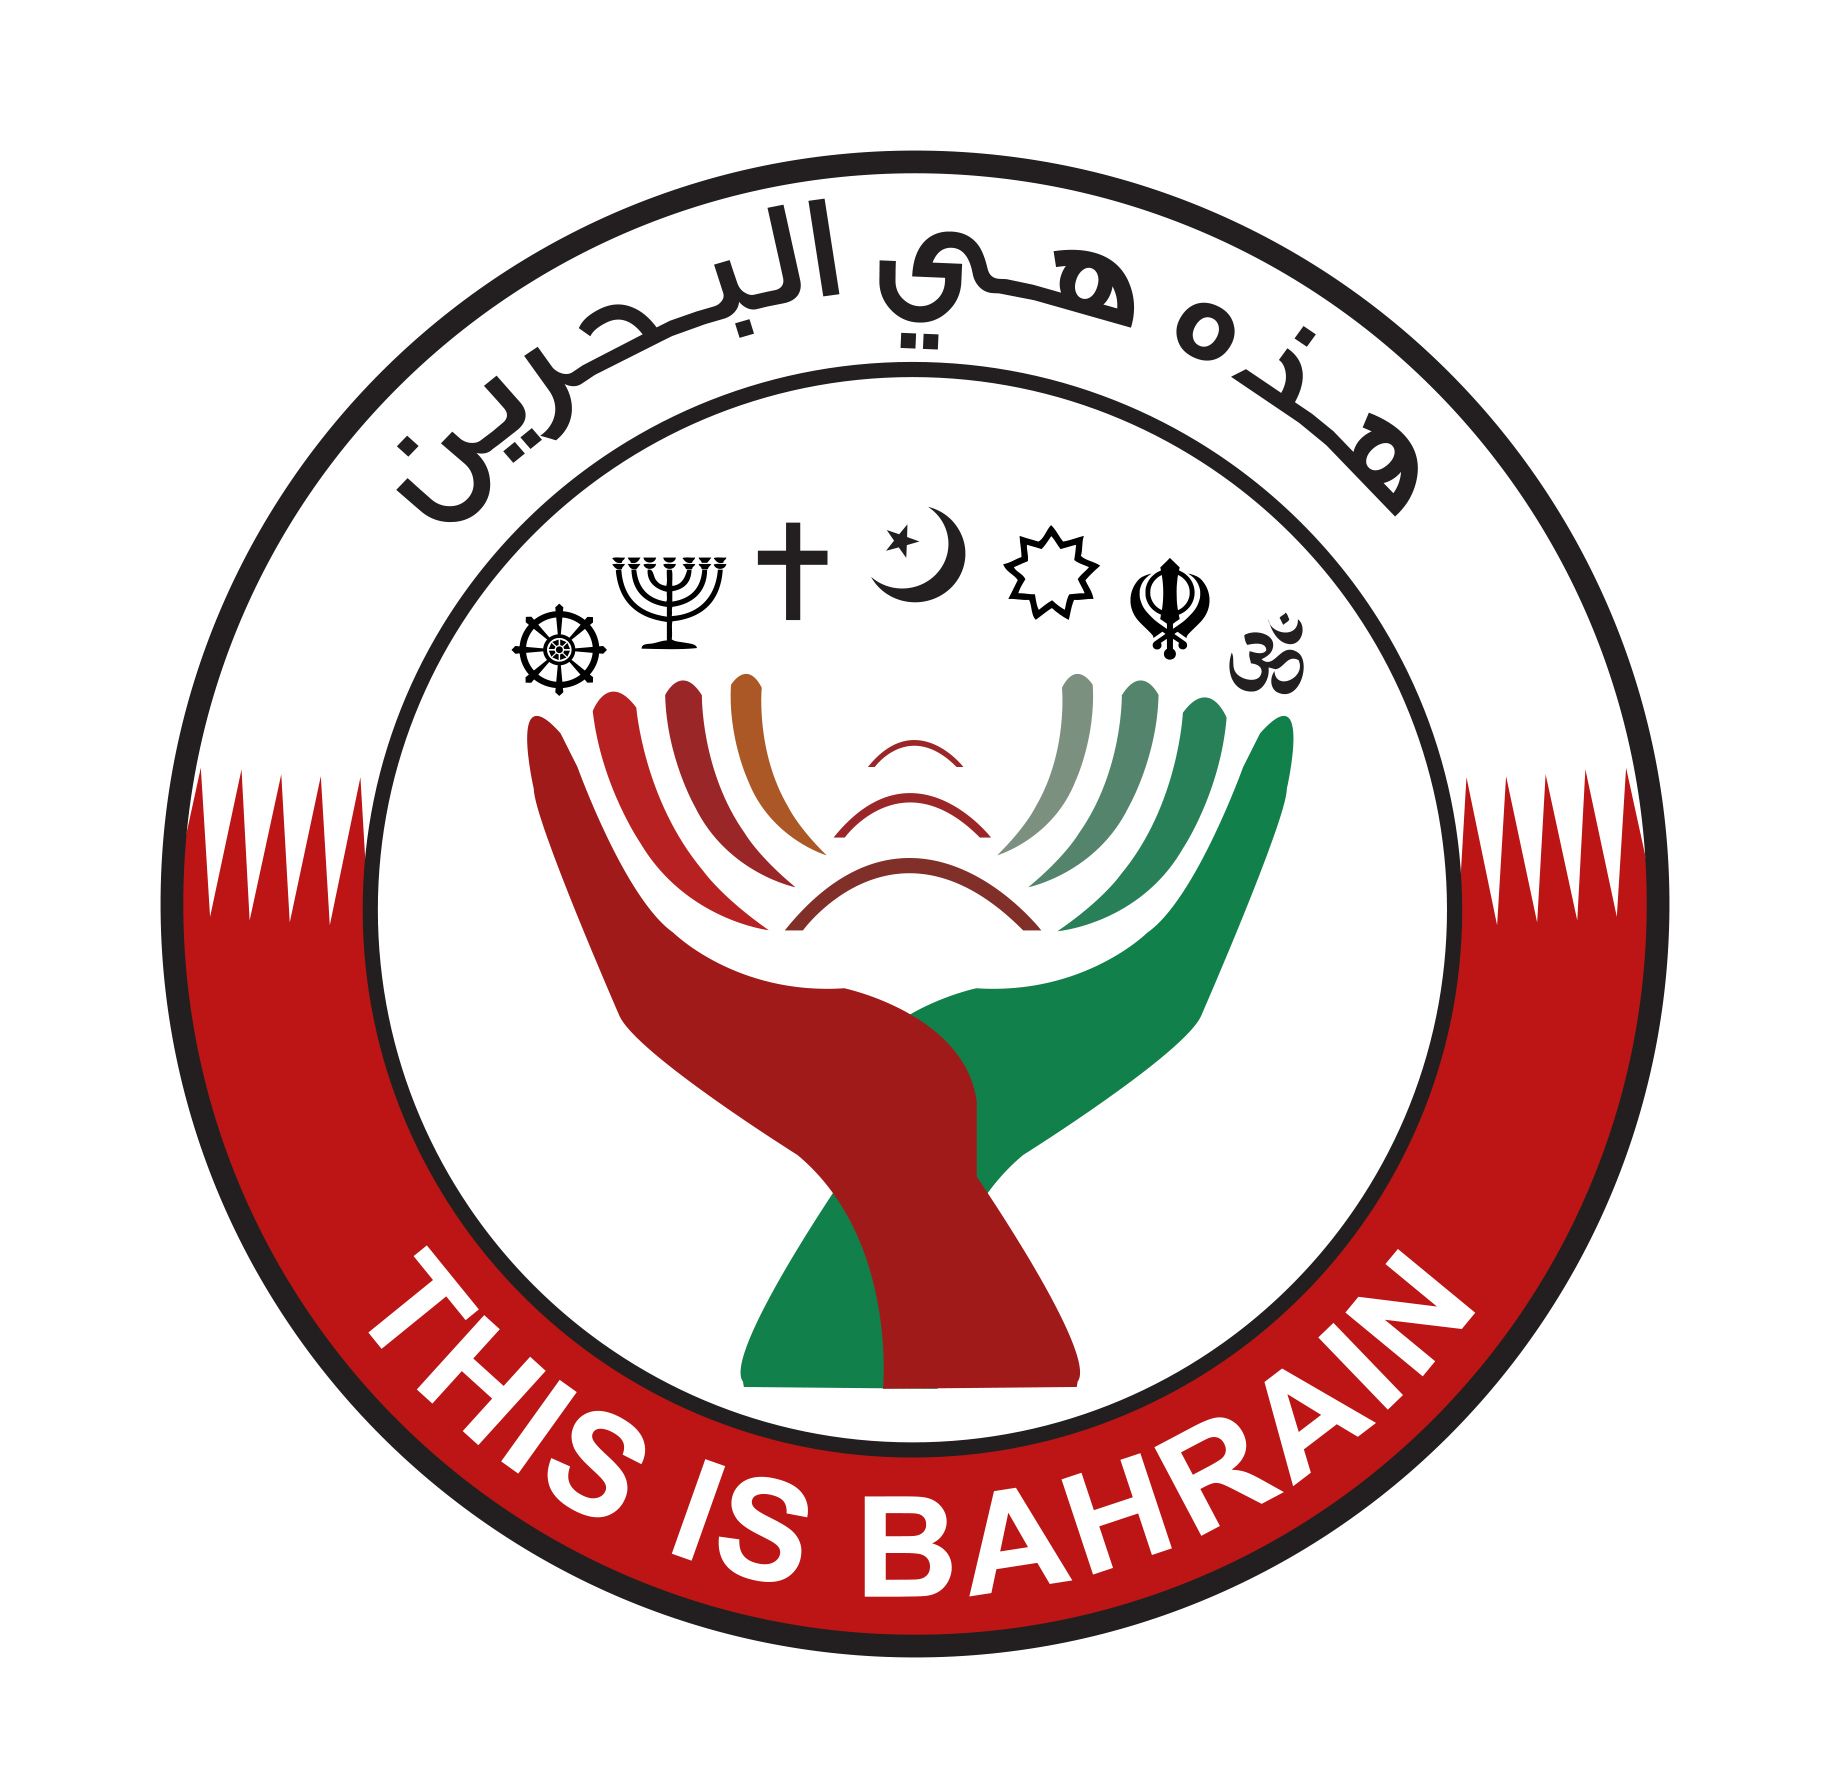 THIS IS BAHRAIN